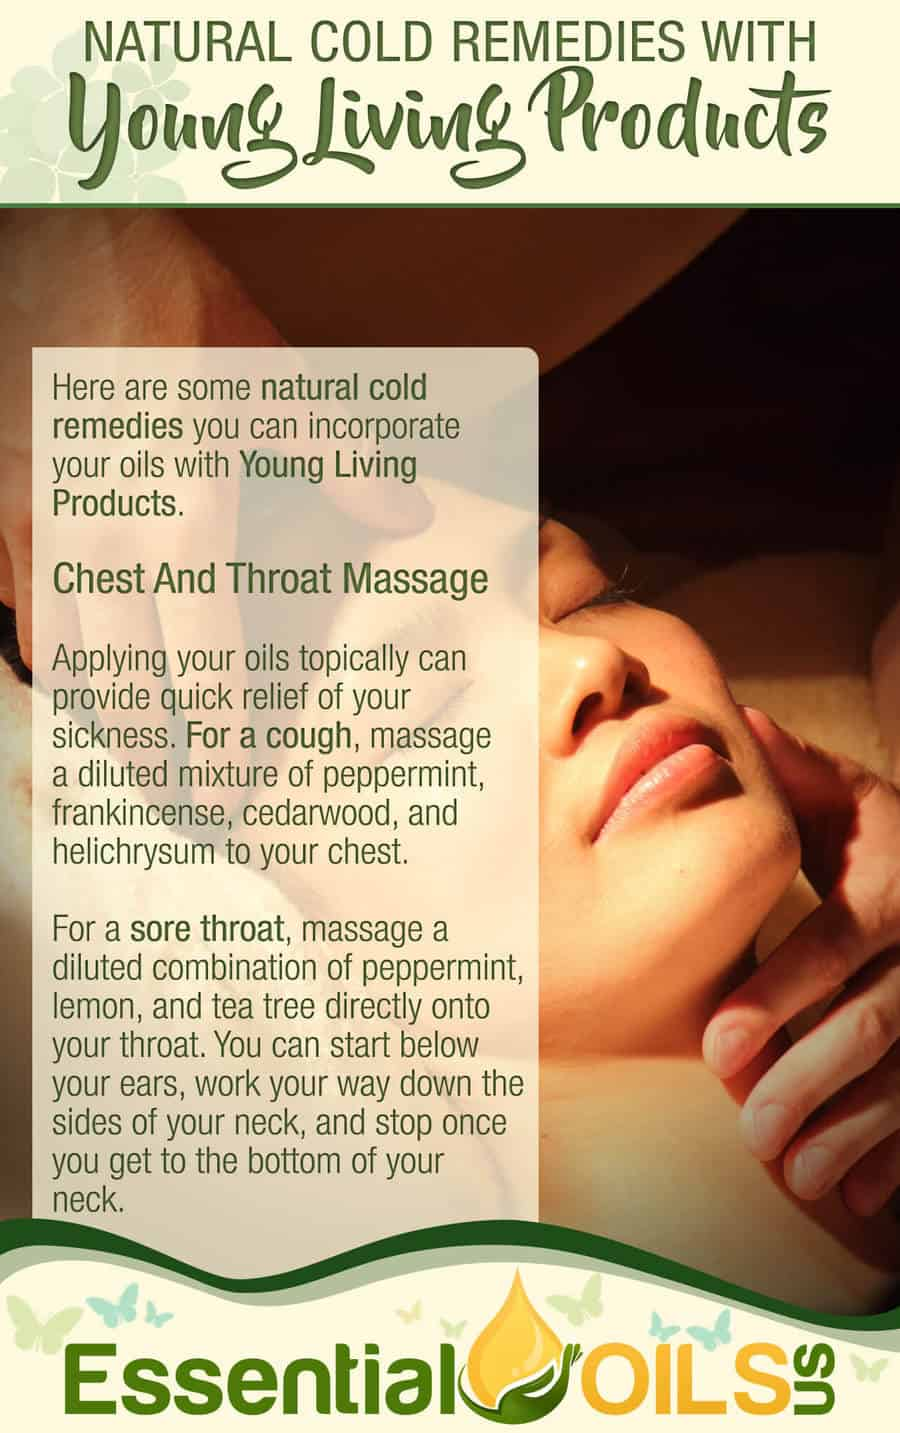 Natural Cold Remedies With Young Living - Chest & Throat Massage